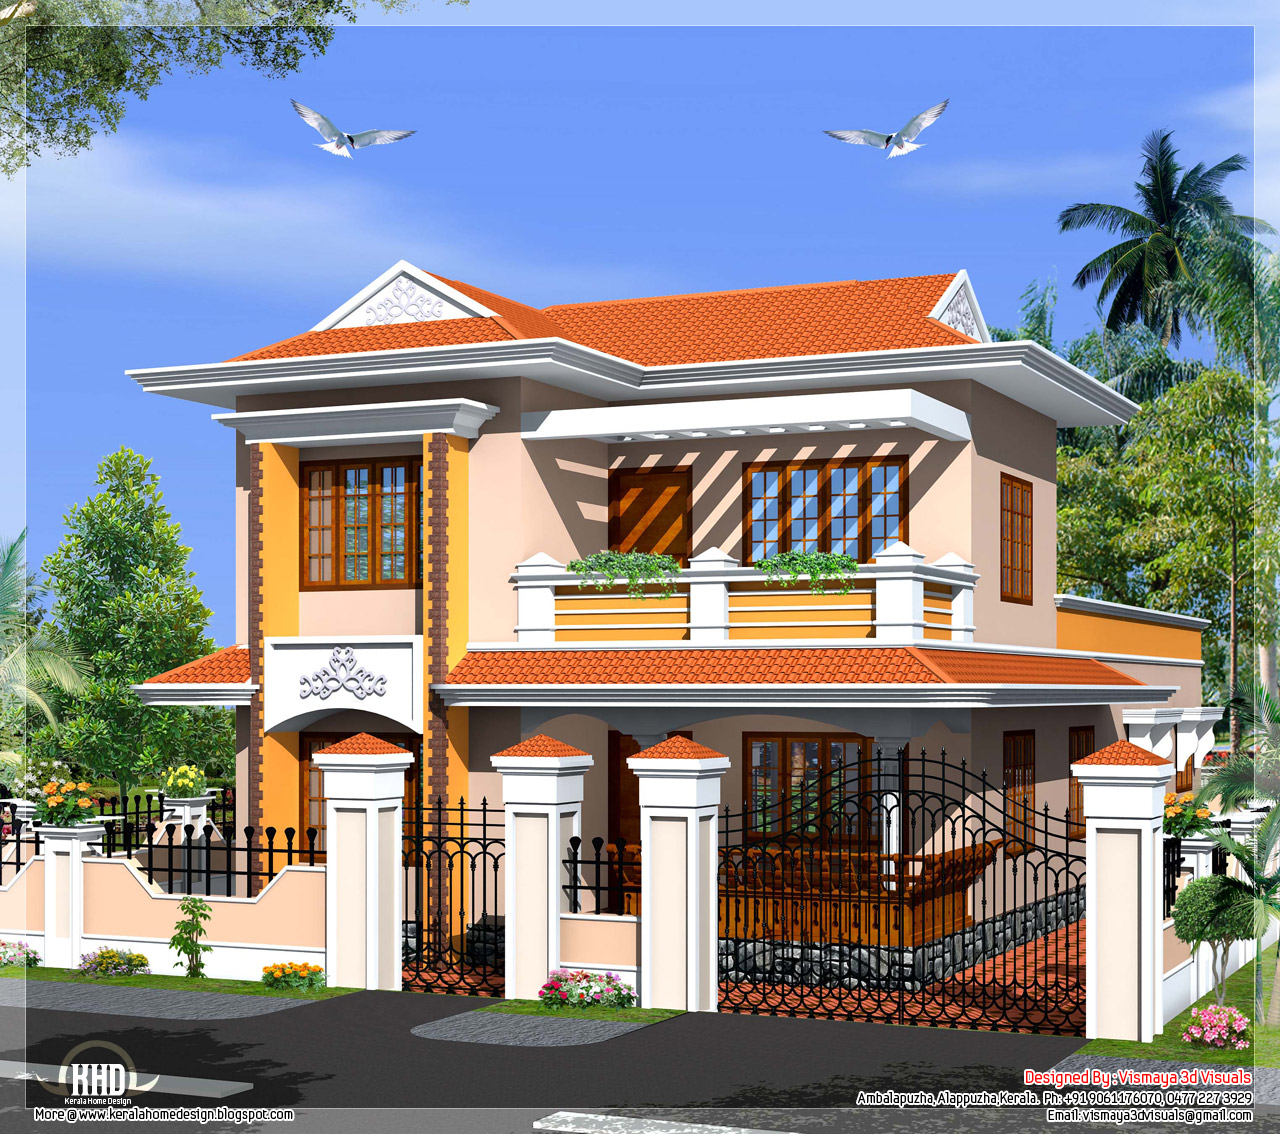 kerala model villa in 2110 in square feet kerala home design and floor plans. Black Bedroom Furniture Sets. Home Design Ideas